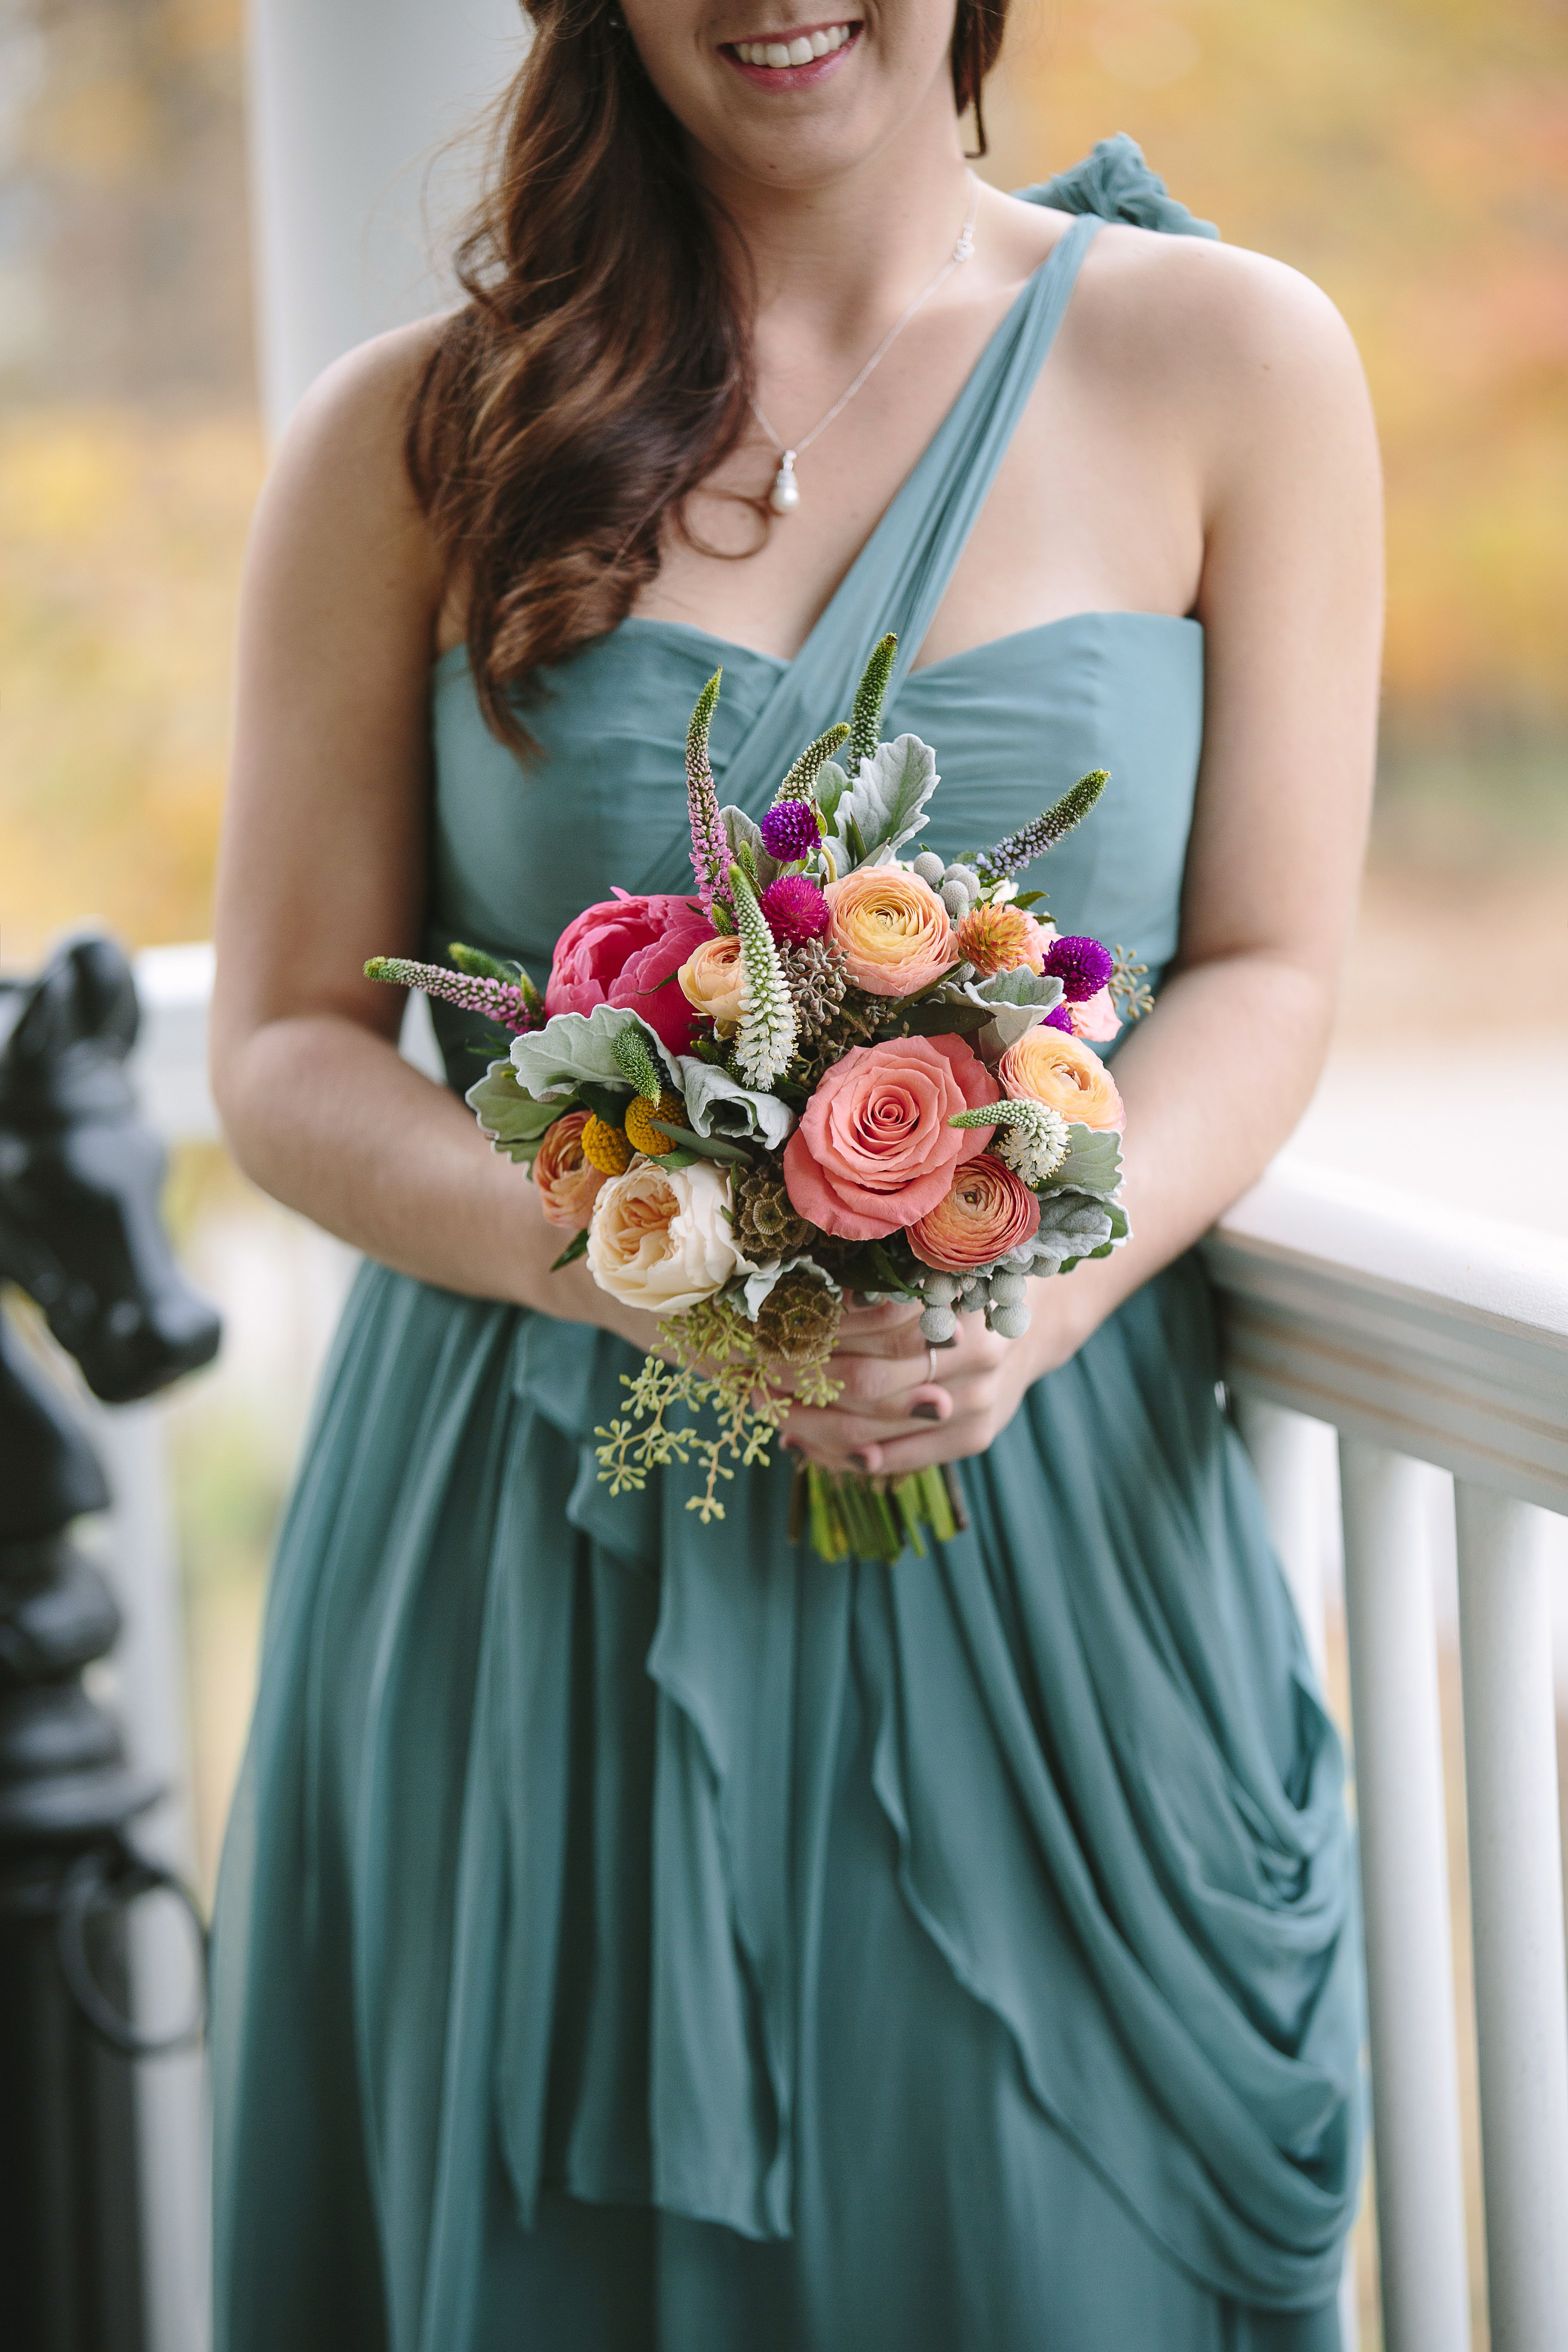 Teal Bridesmaid Dresses, Textured Bridesmaid Bouquets | wedding ...